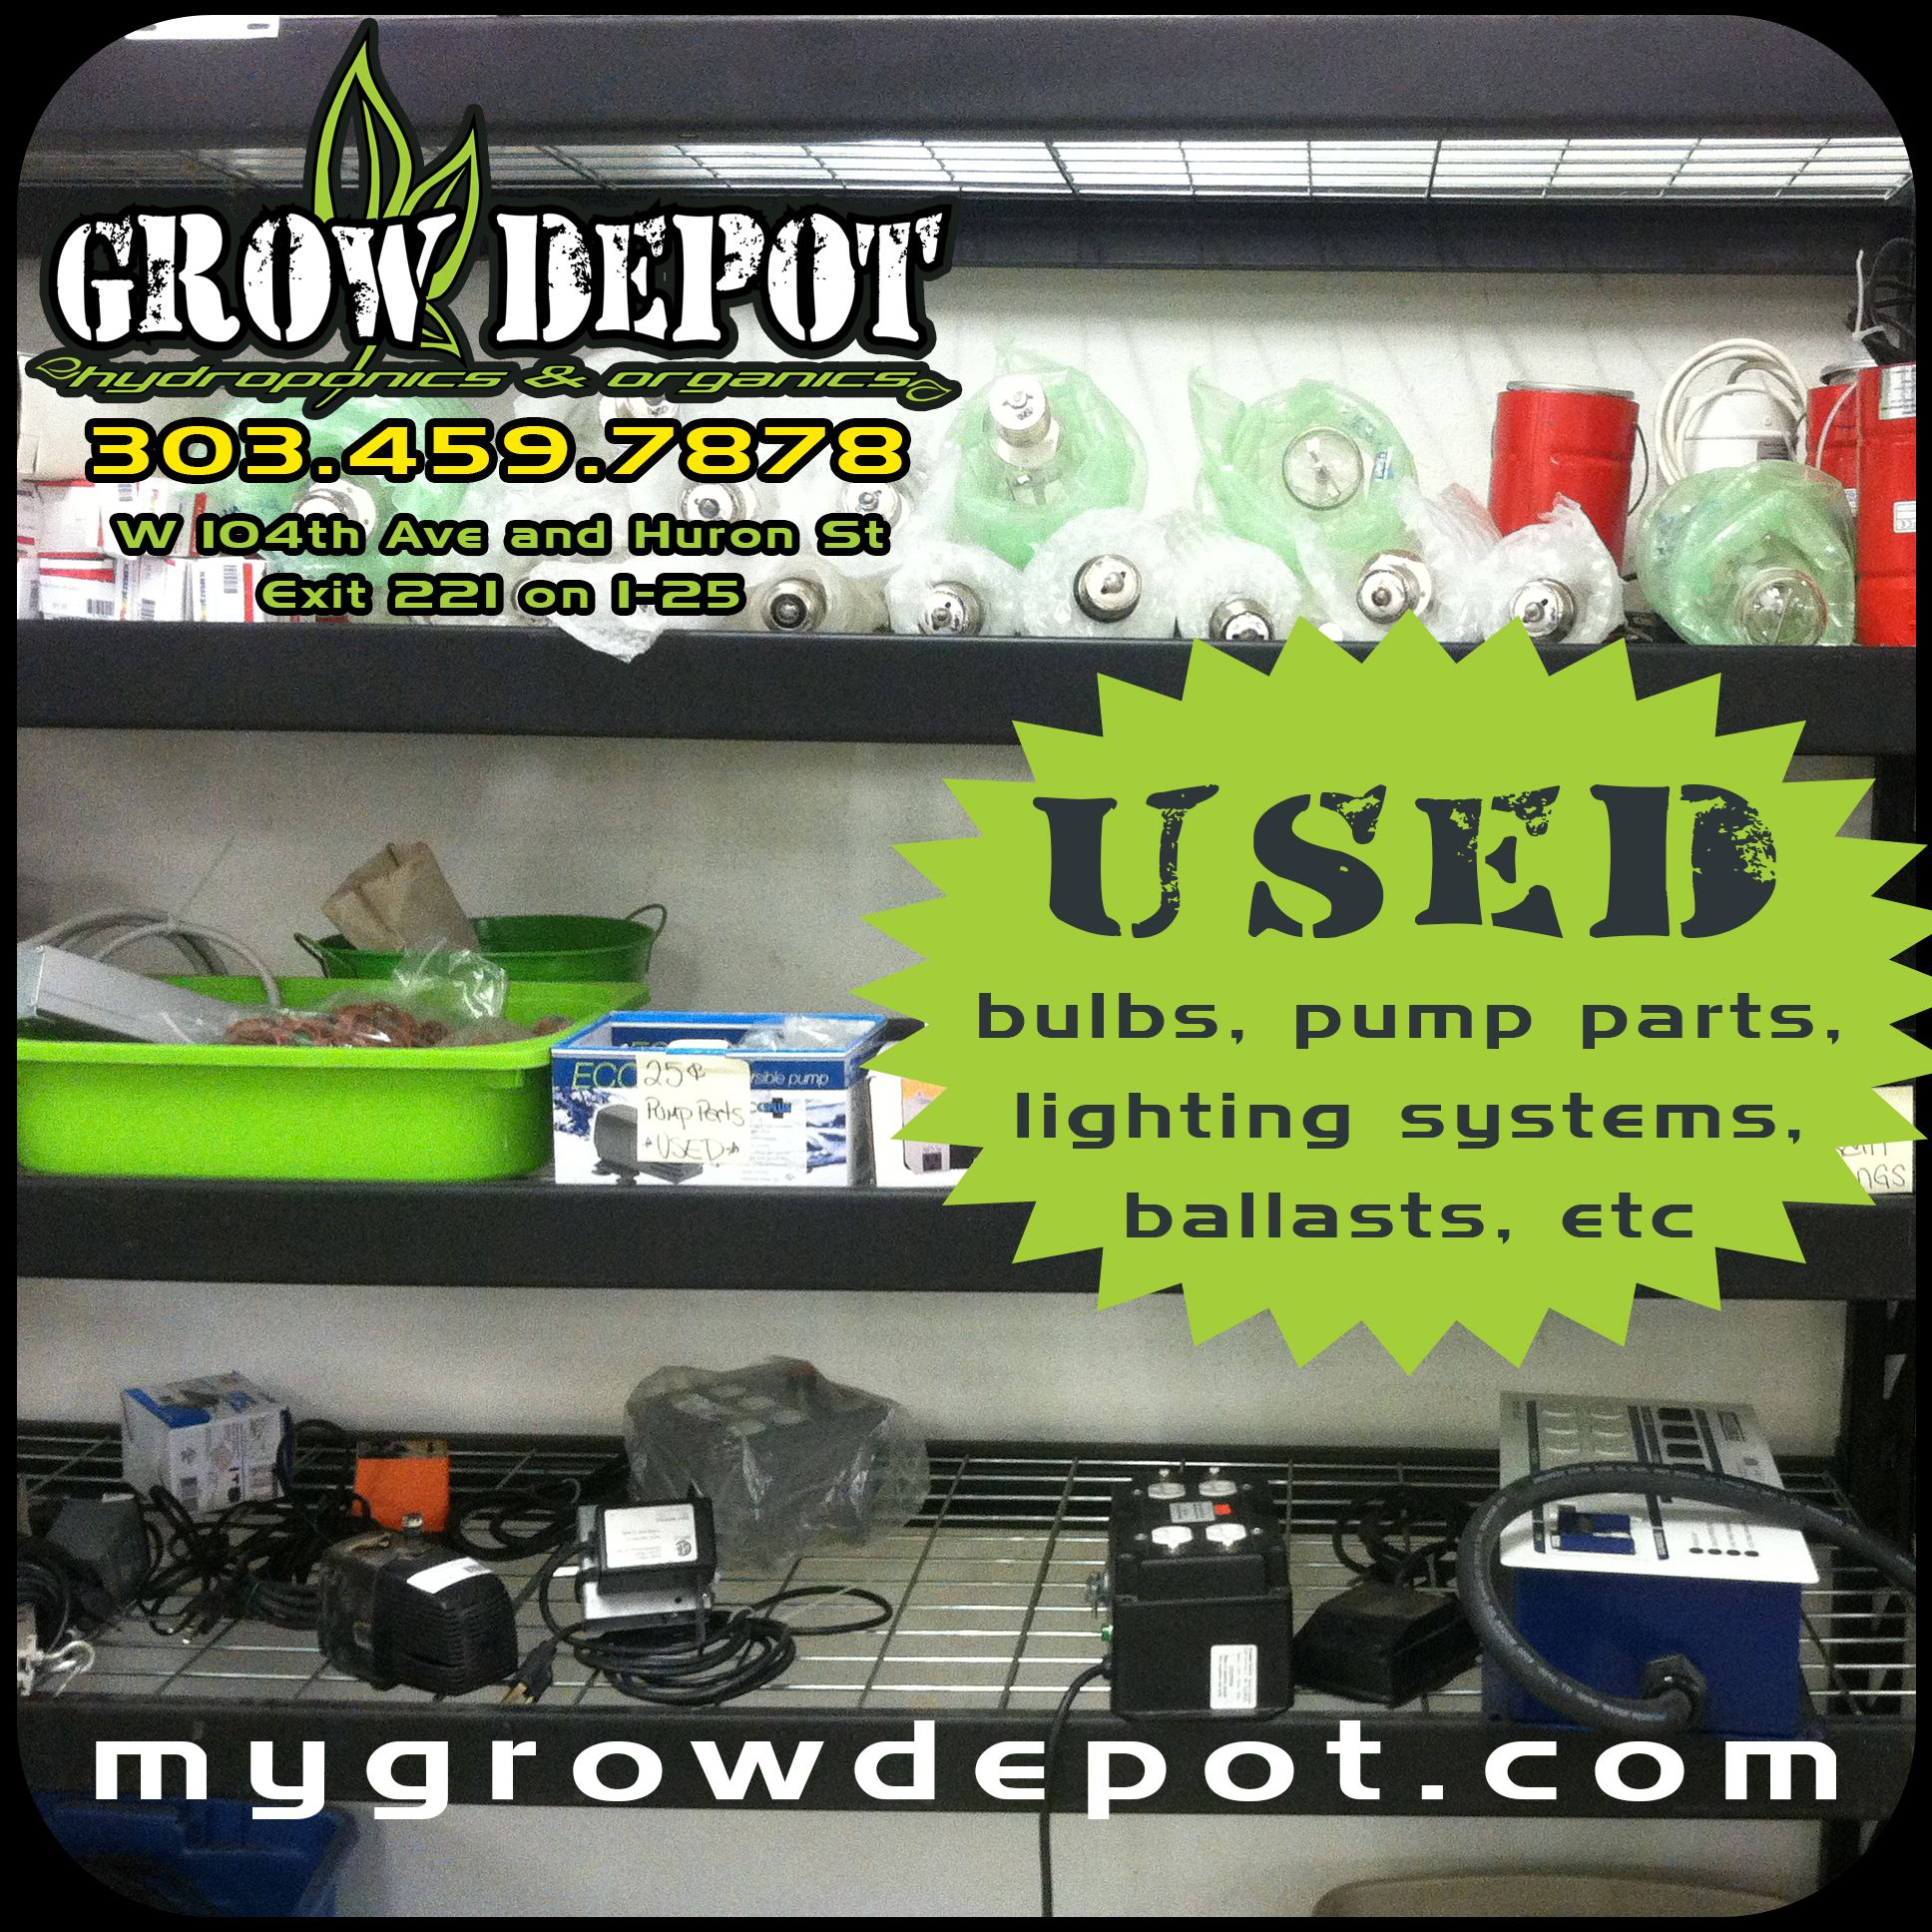 We buy and sell USED hydroponic supplies! Come by our store today